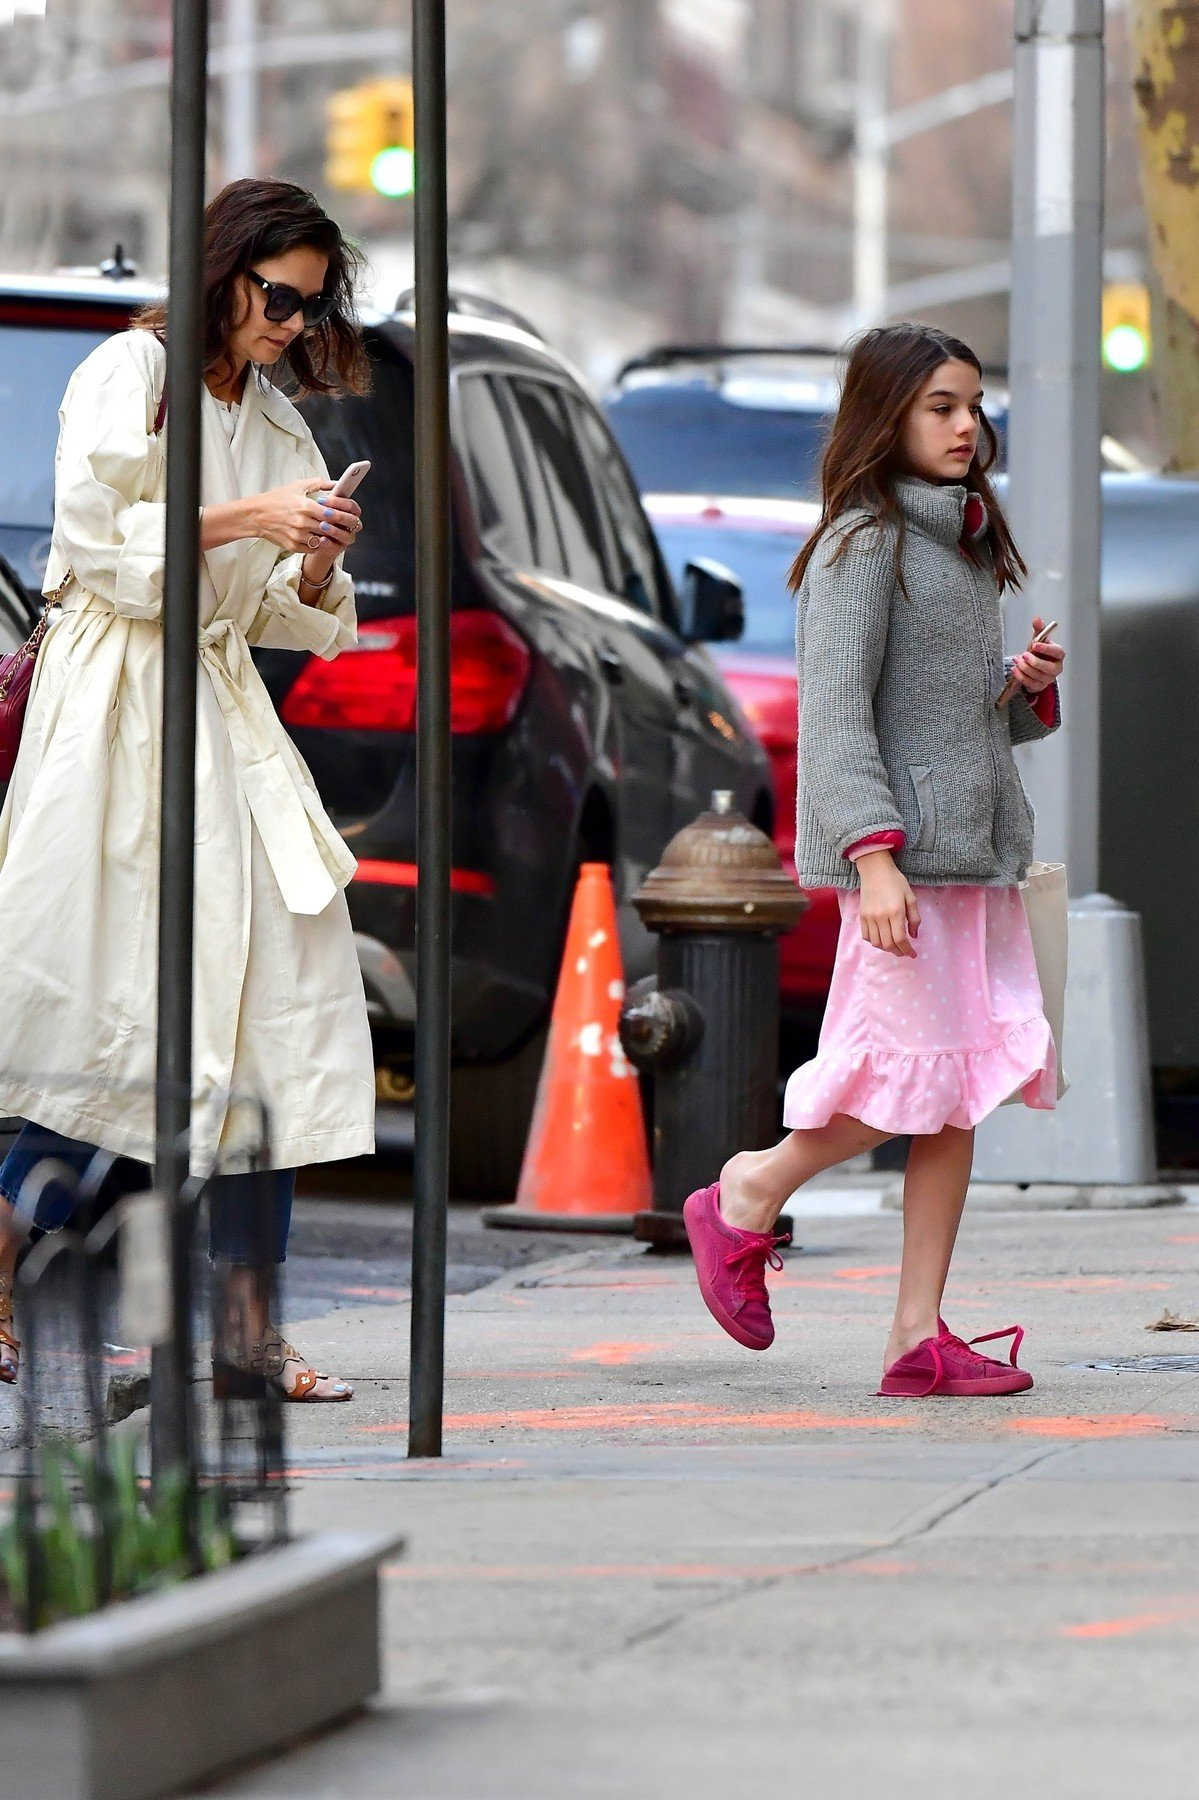 ** RIGHTS: WORLDWIDE EXCEPT IN FRANCE, GERMANY, POLAND ** New York, NY  - *EXCLUSIVE*  - While Jamie Foxx is in town, Katie Holmes and Suri  Cruise are pictured arriving home at 7:30am!  Suri looks tired as she makes her way into the apartment after the two arrived home early this morning in a yellow cab.  Pictured: Katie Holmes, Suri Cruise  BACKGRID USA 28 MARCH 2019, Image: 422899489, License: Rights-managed, Restrictions: , Model Release: no, Credit line: Profimedia, Backgrid USA